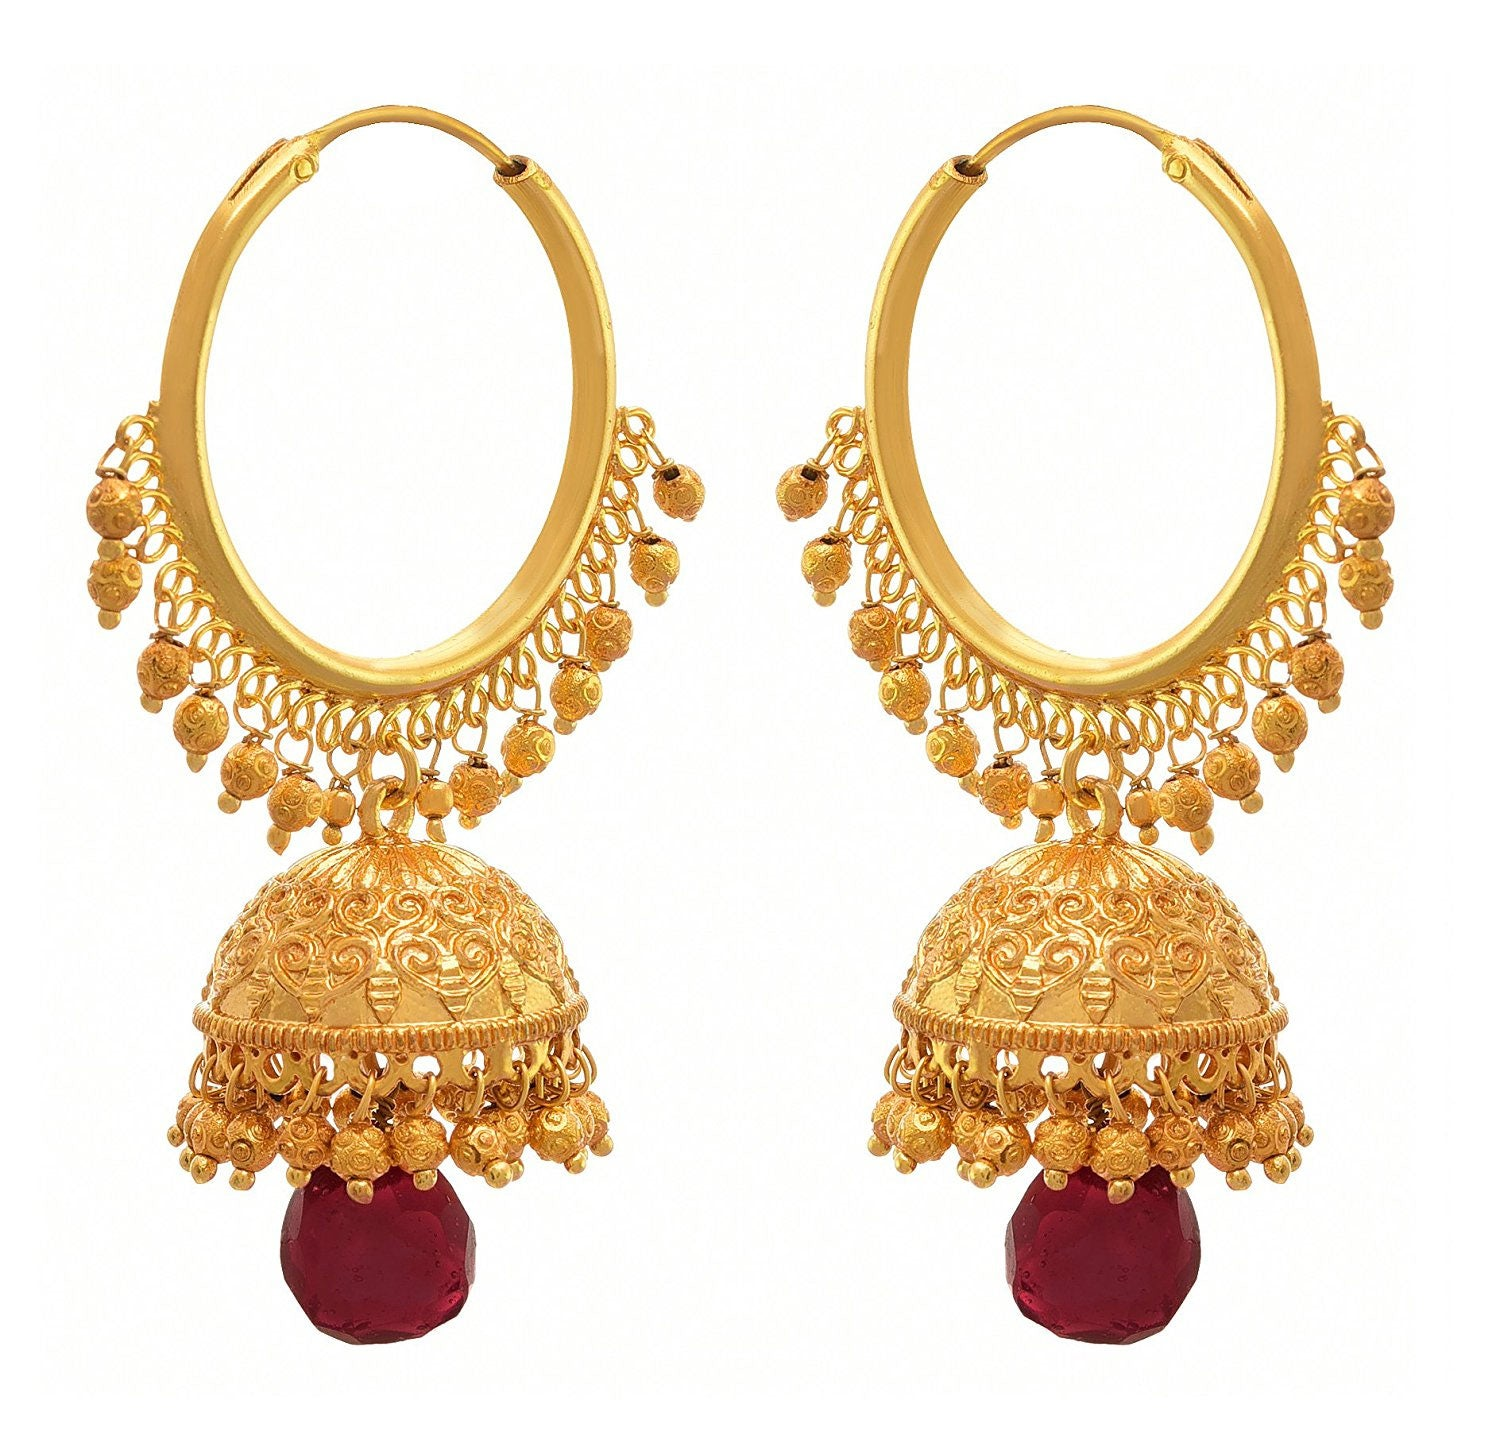 JFL - Traditional Ethnic One Gram Gold Plated Designer Jhumki Earring for Women & Girls.